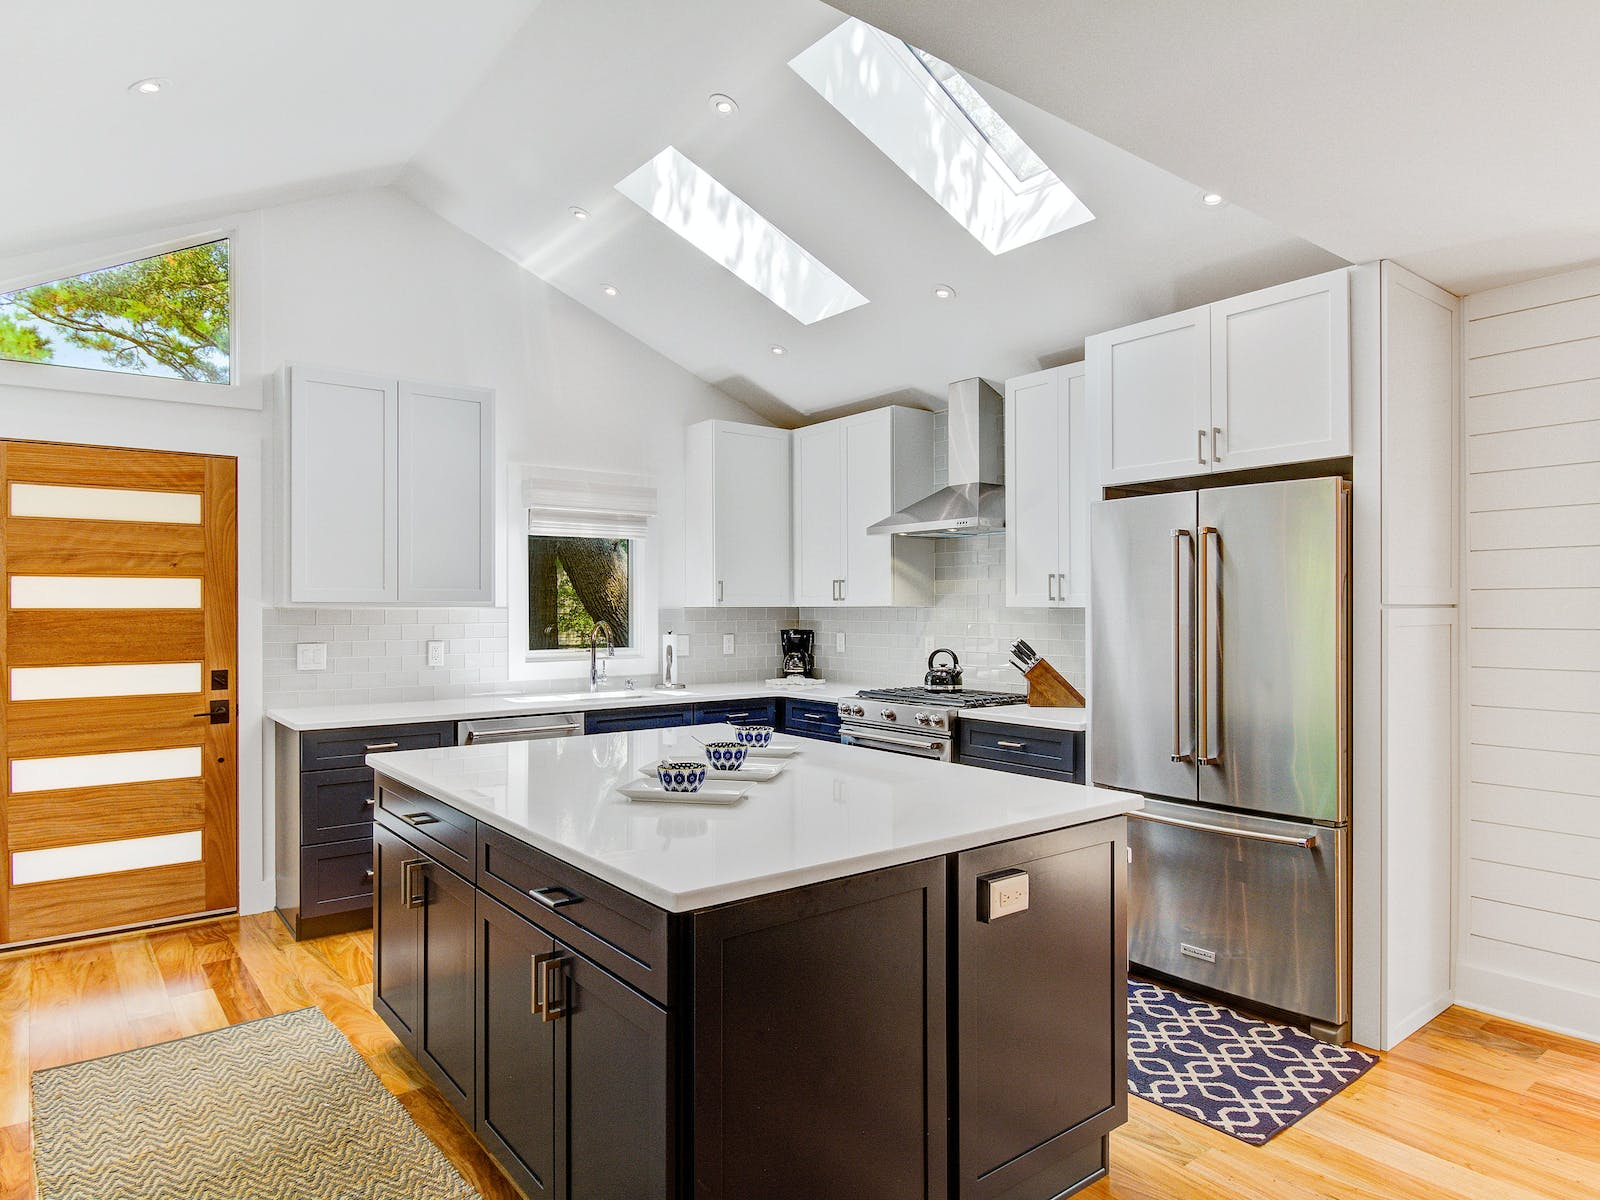 contemporary kitchen with stainless steel appliances, ample storage, skylights, and a custom island